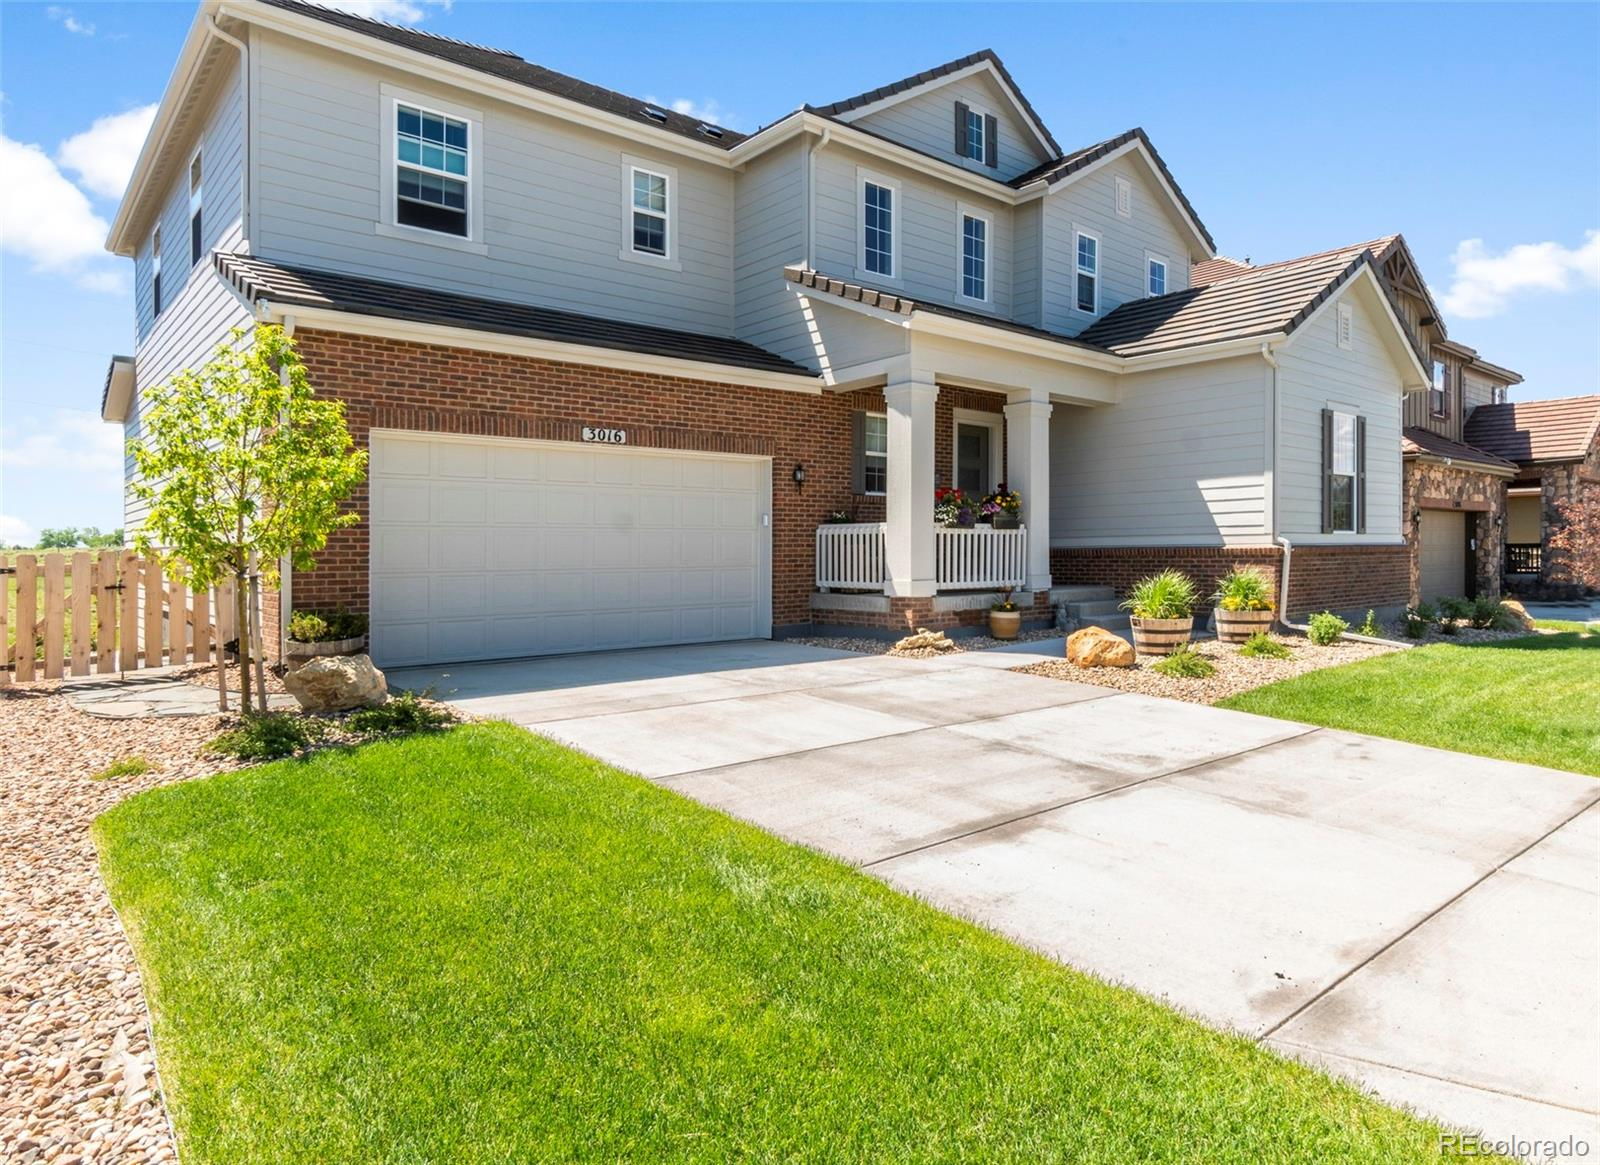 3016 Yale Drive, Broomfield, CO 80023 - Broomfield, CO real estate listing